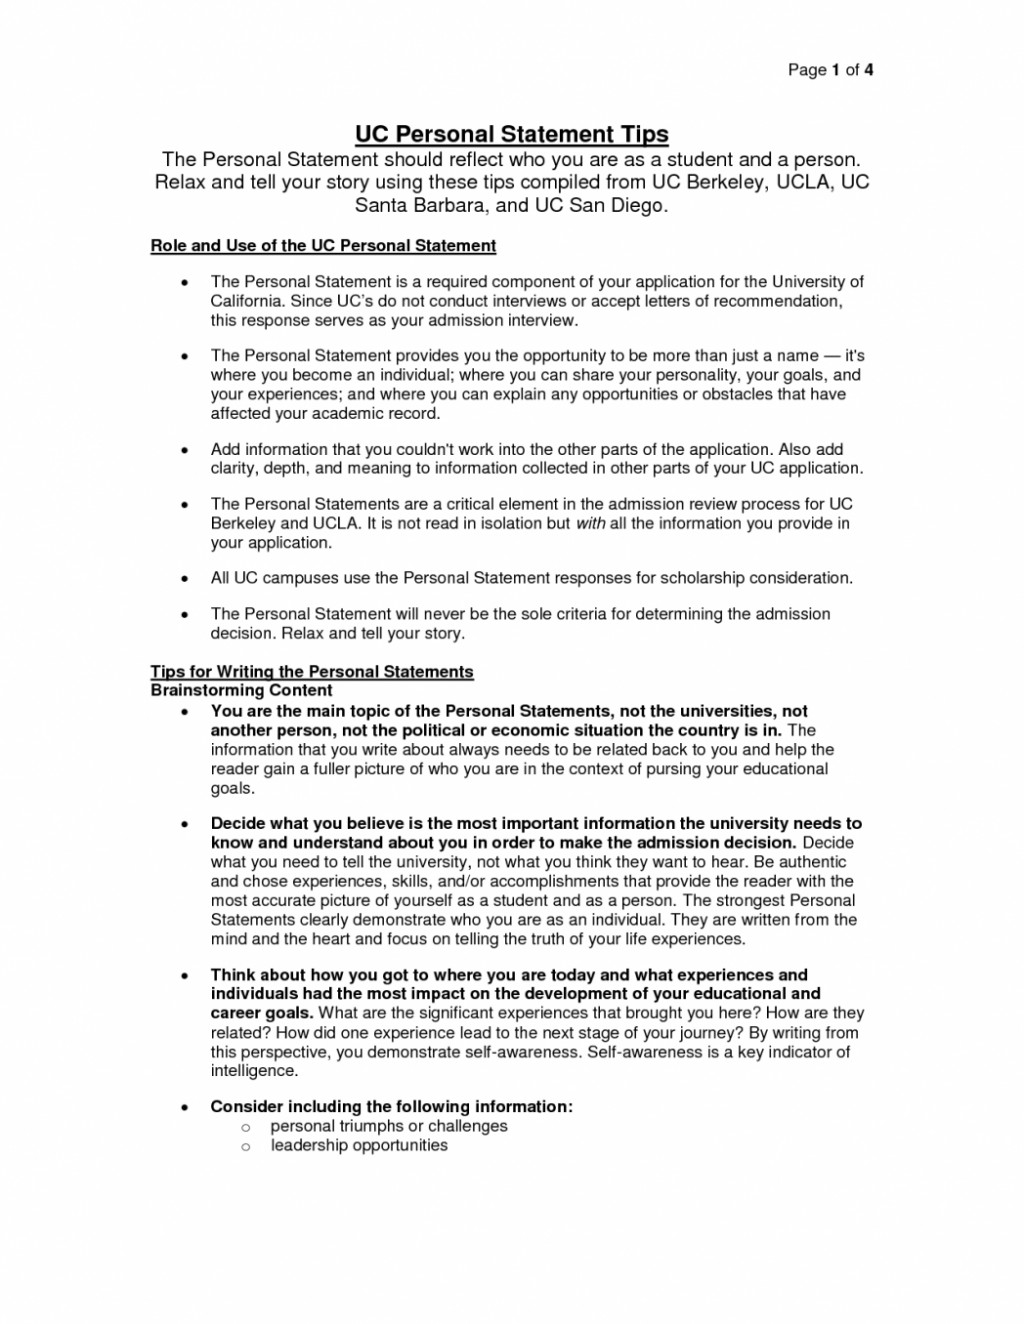 004 Ucla Application Essay Ucs College Prompts Of Personal Statements For Template Mrn Berkeley App Davis 1048x1356 Remarkable Uc Transfer Large